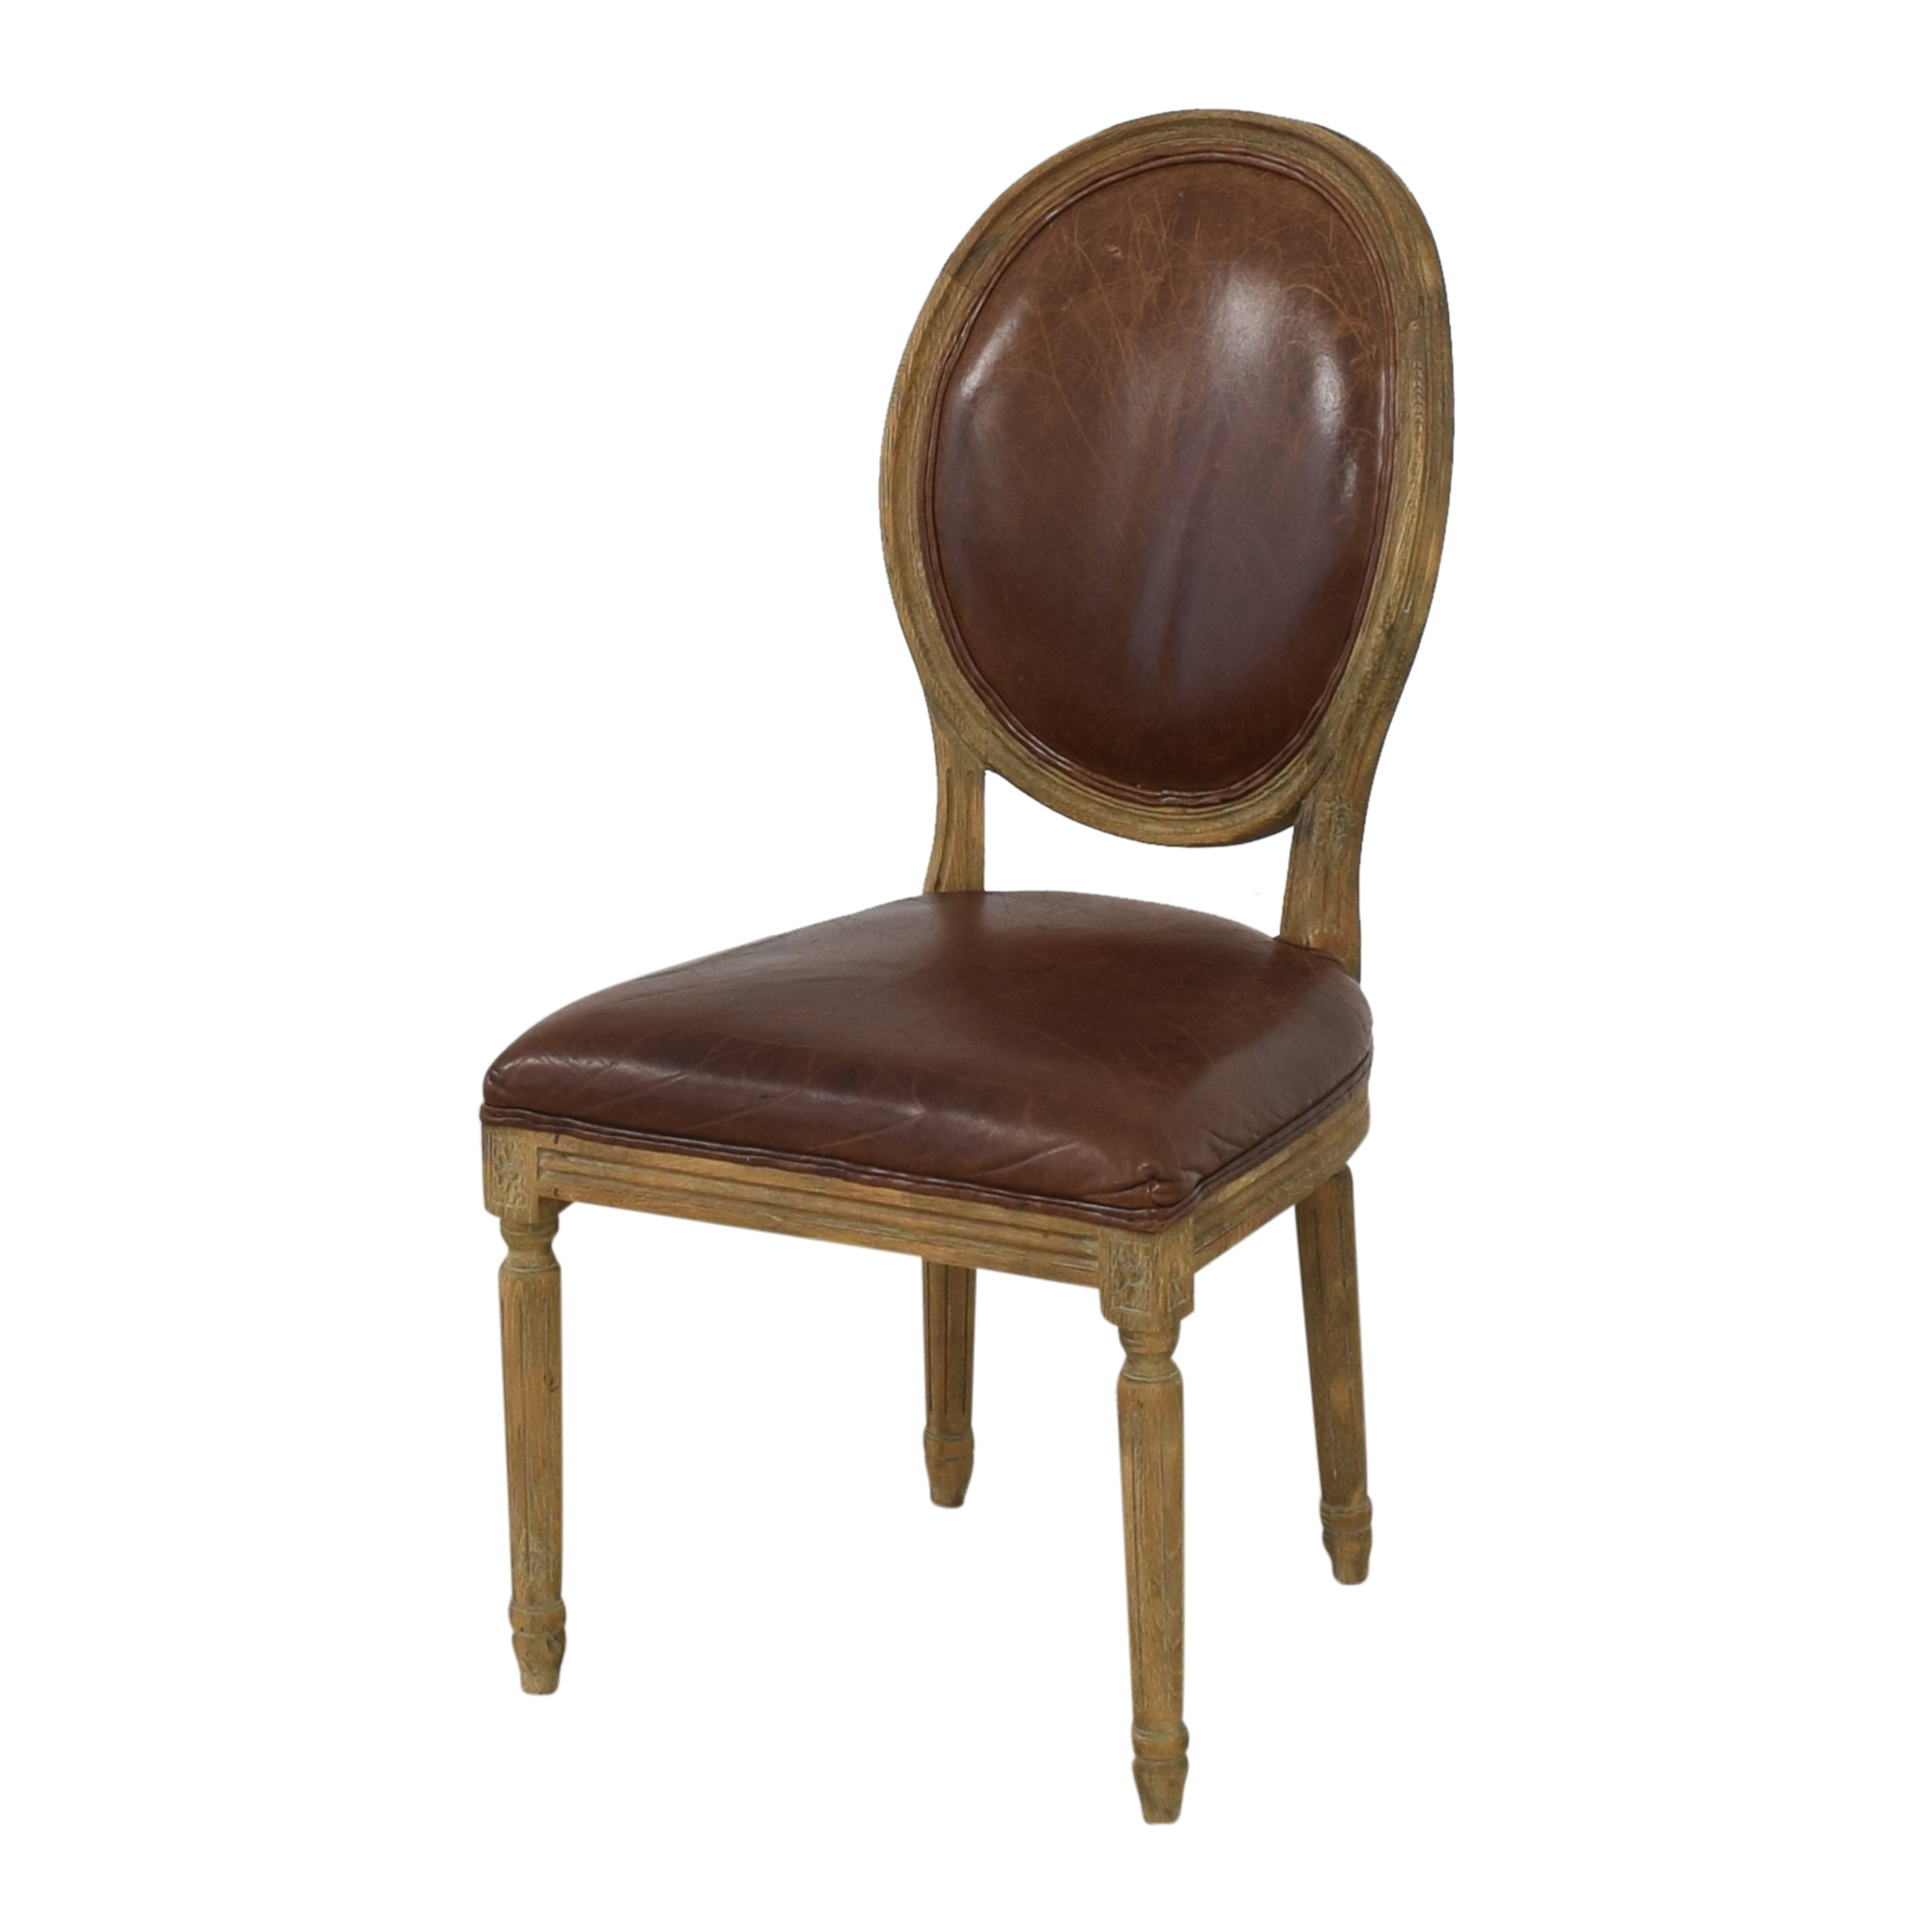 Restoration Hardware Restoration Hardware Vintage French Round Dining Chairs ma